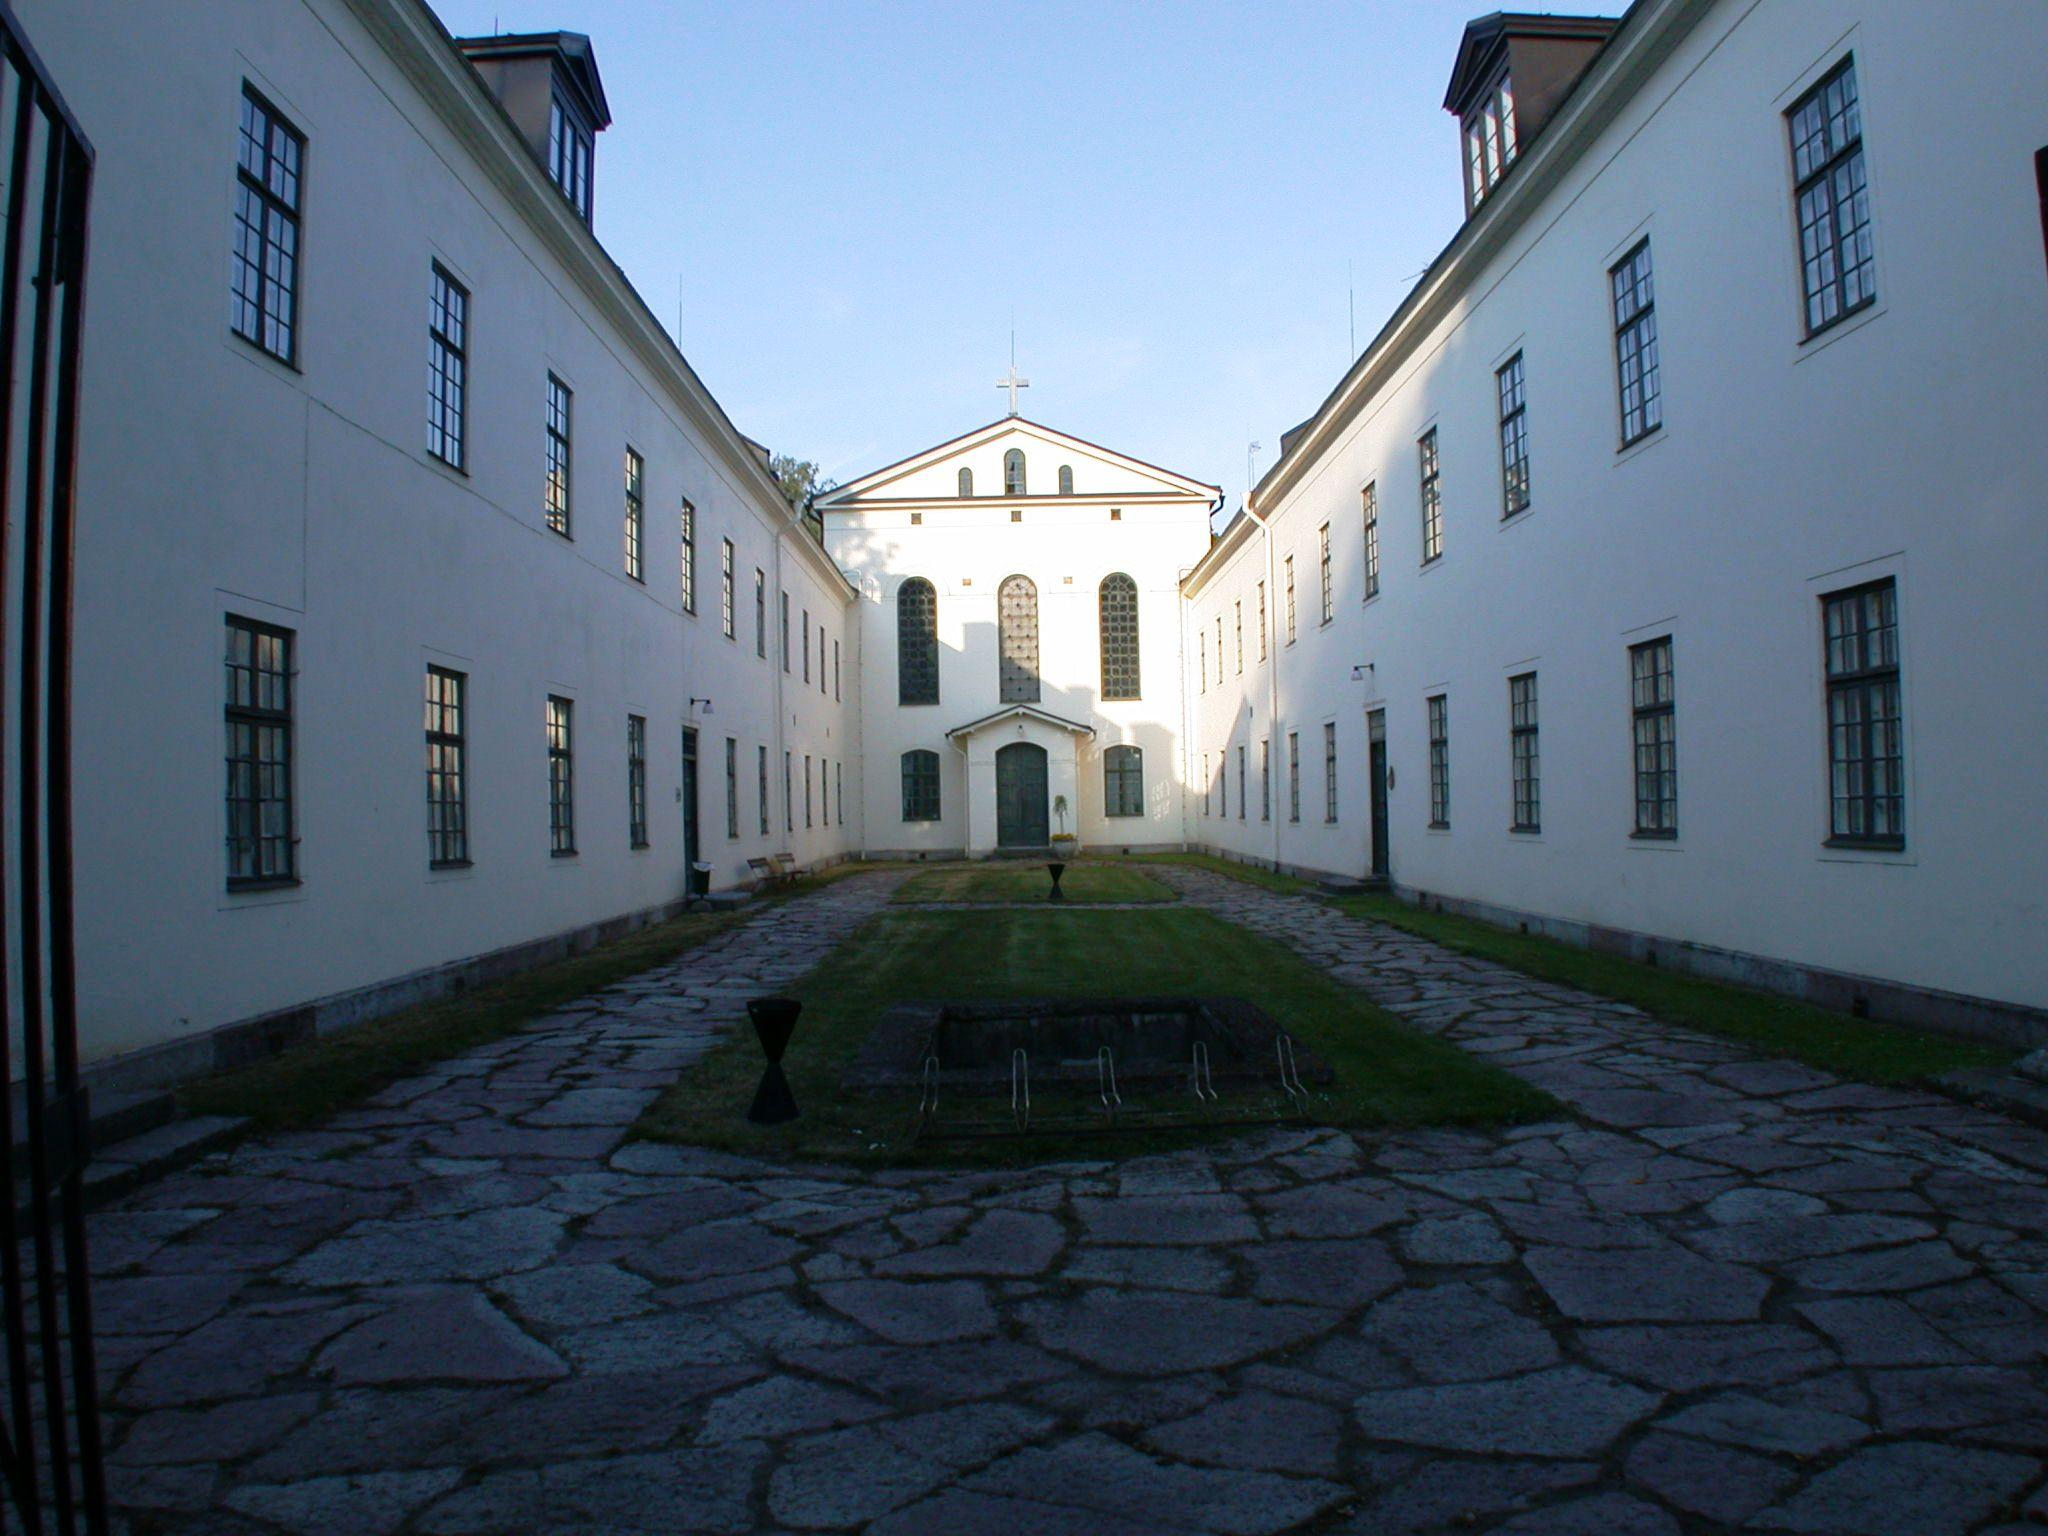 The_old_asylum_Vadstena_Sweden.JPG (2048×1536)